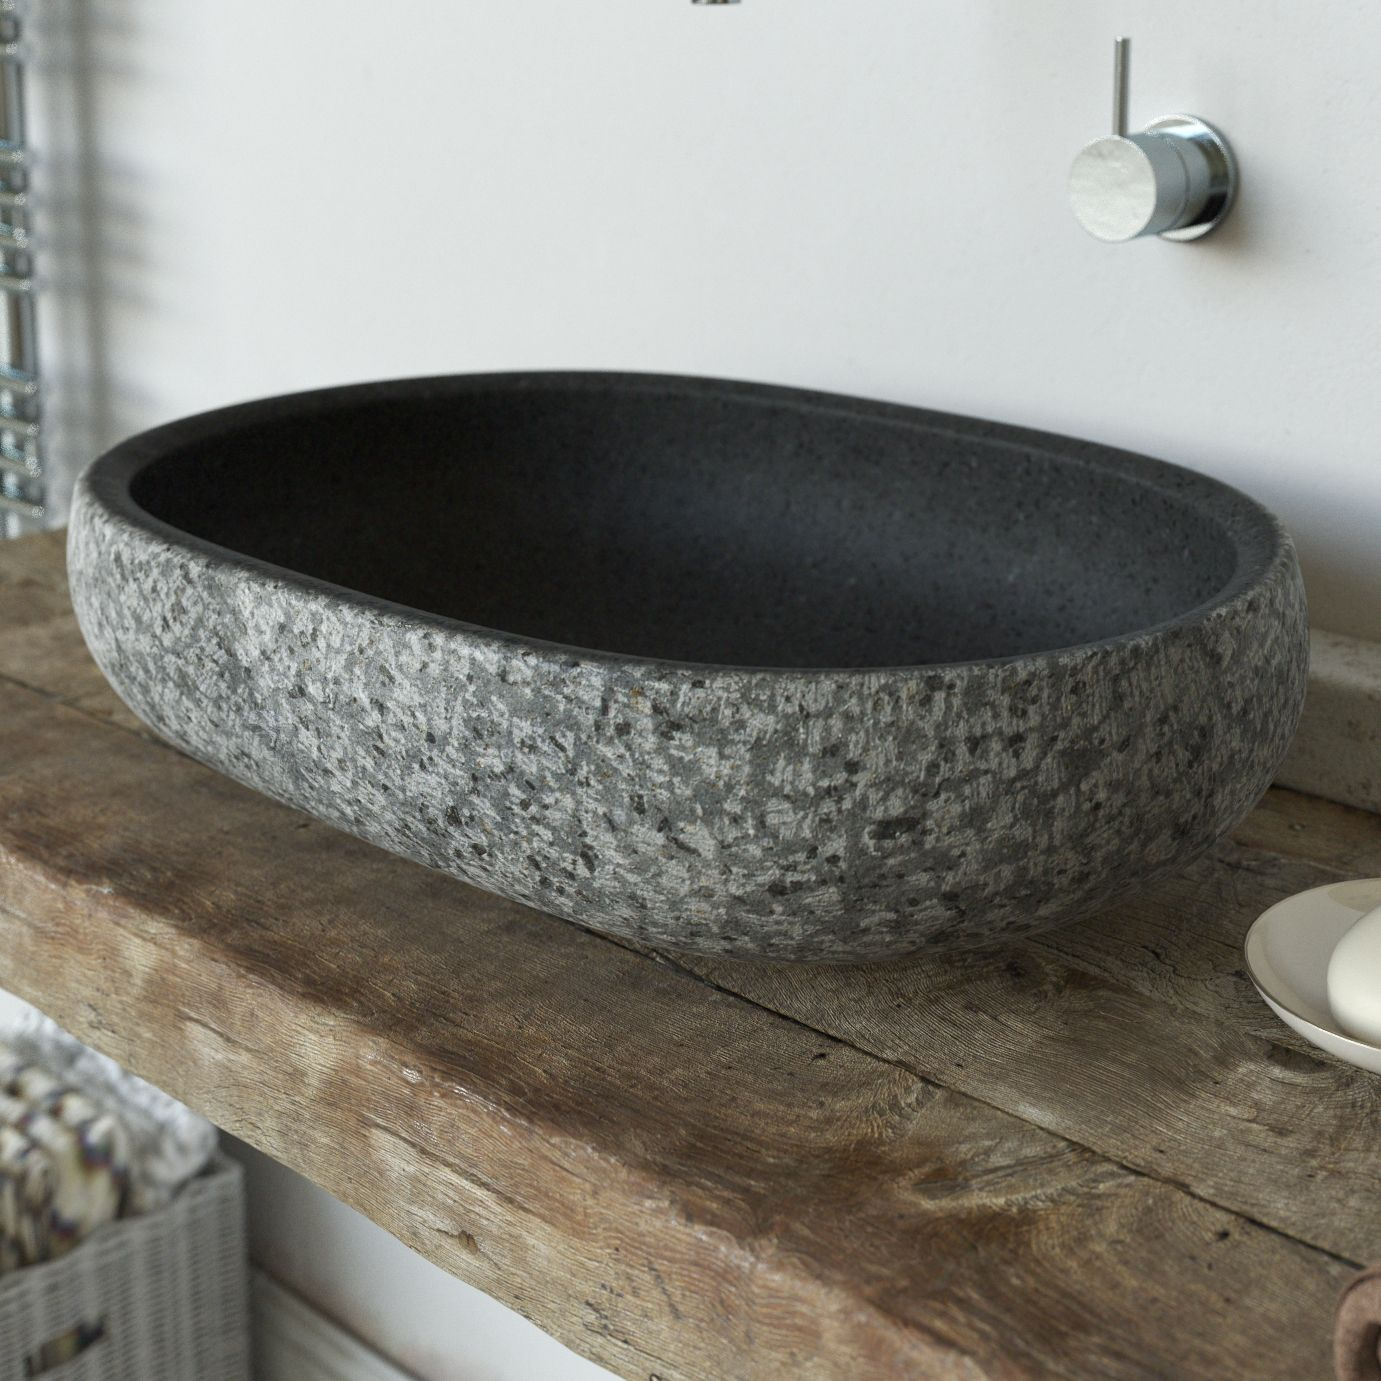 Bathroom sink stone - Lava Stone Vessel Wash Basin Worked Upon By Hand With Rock Face Effect Sink